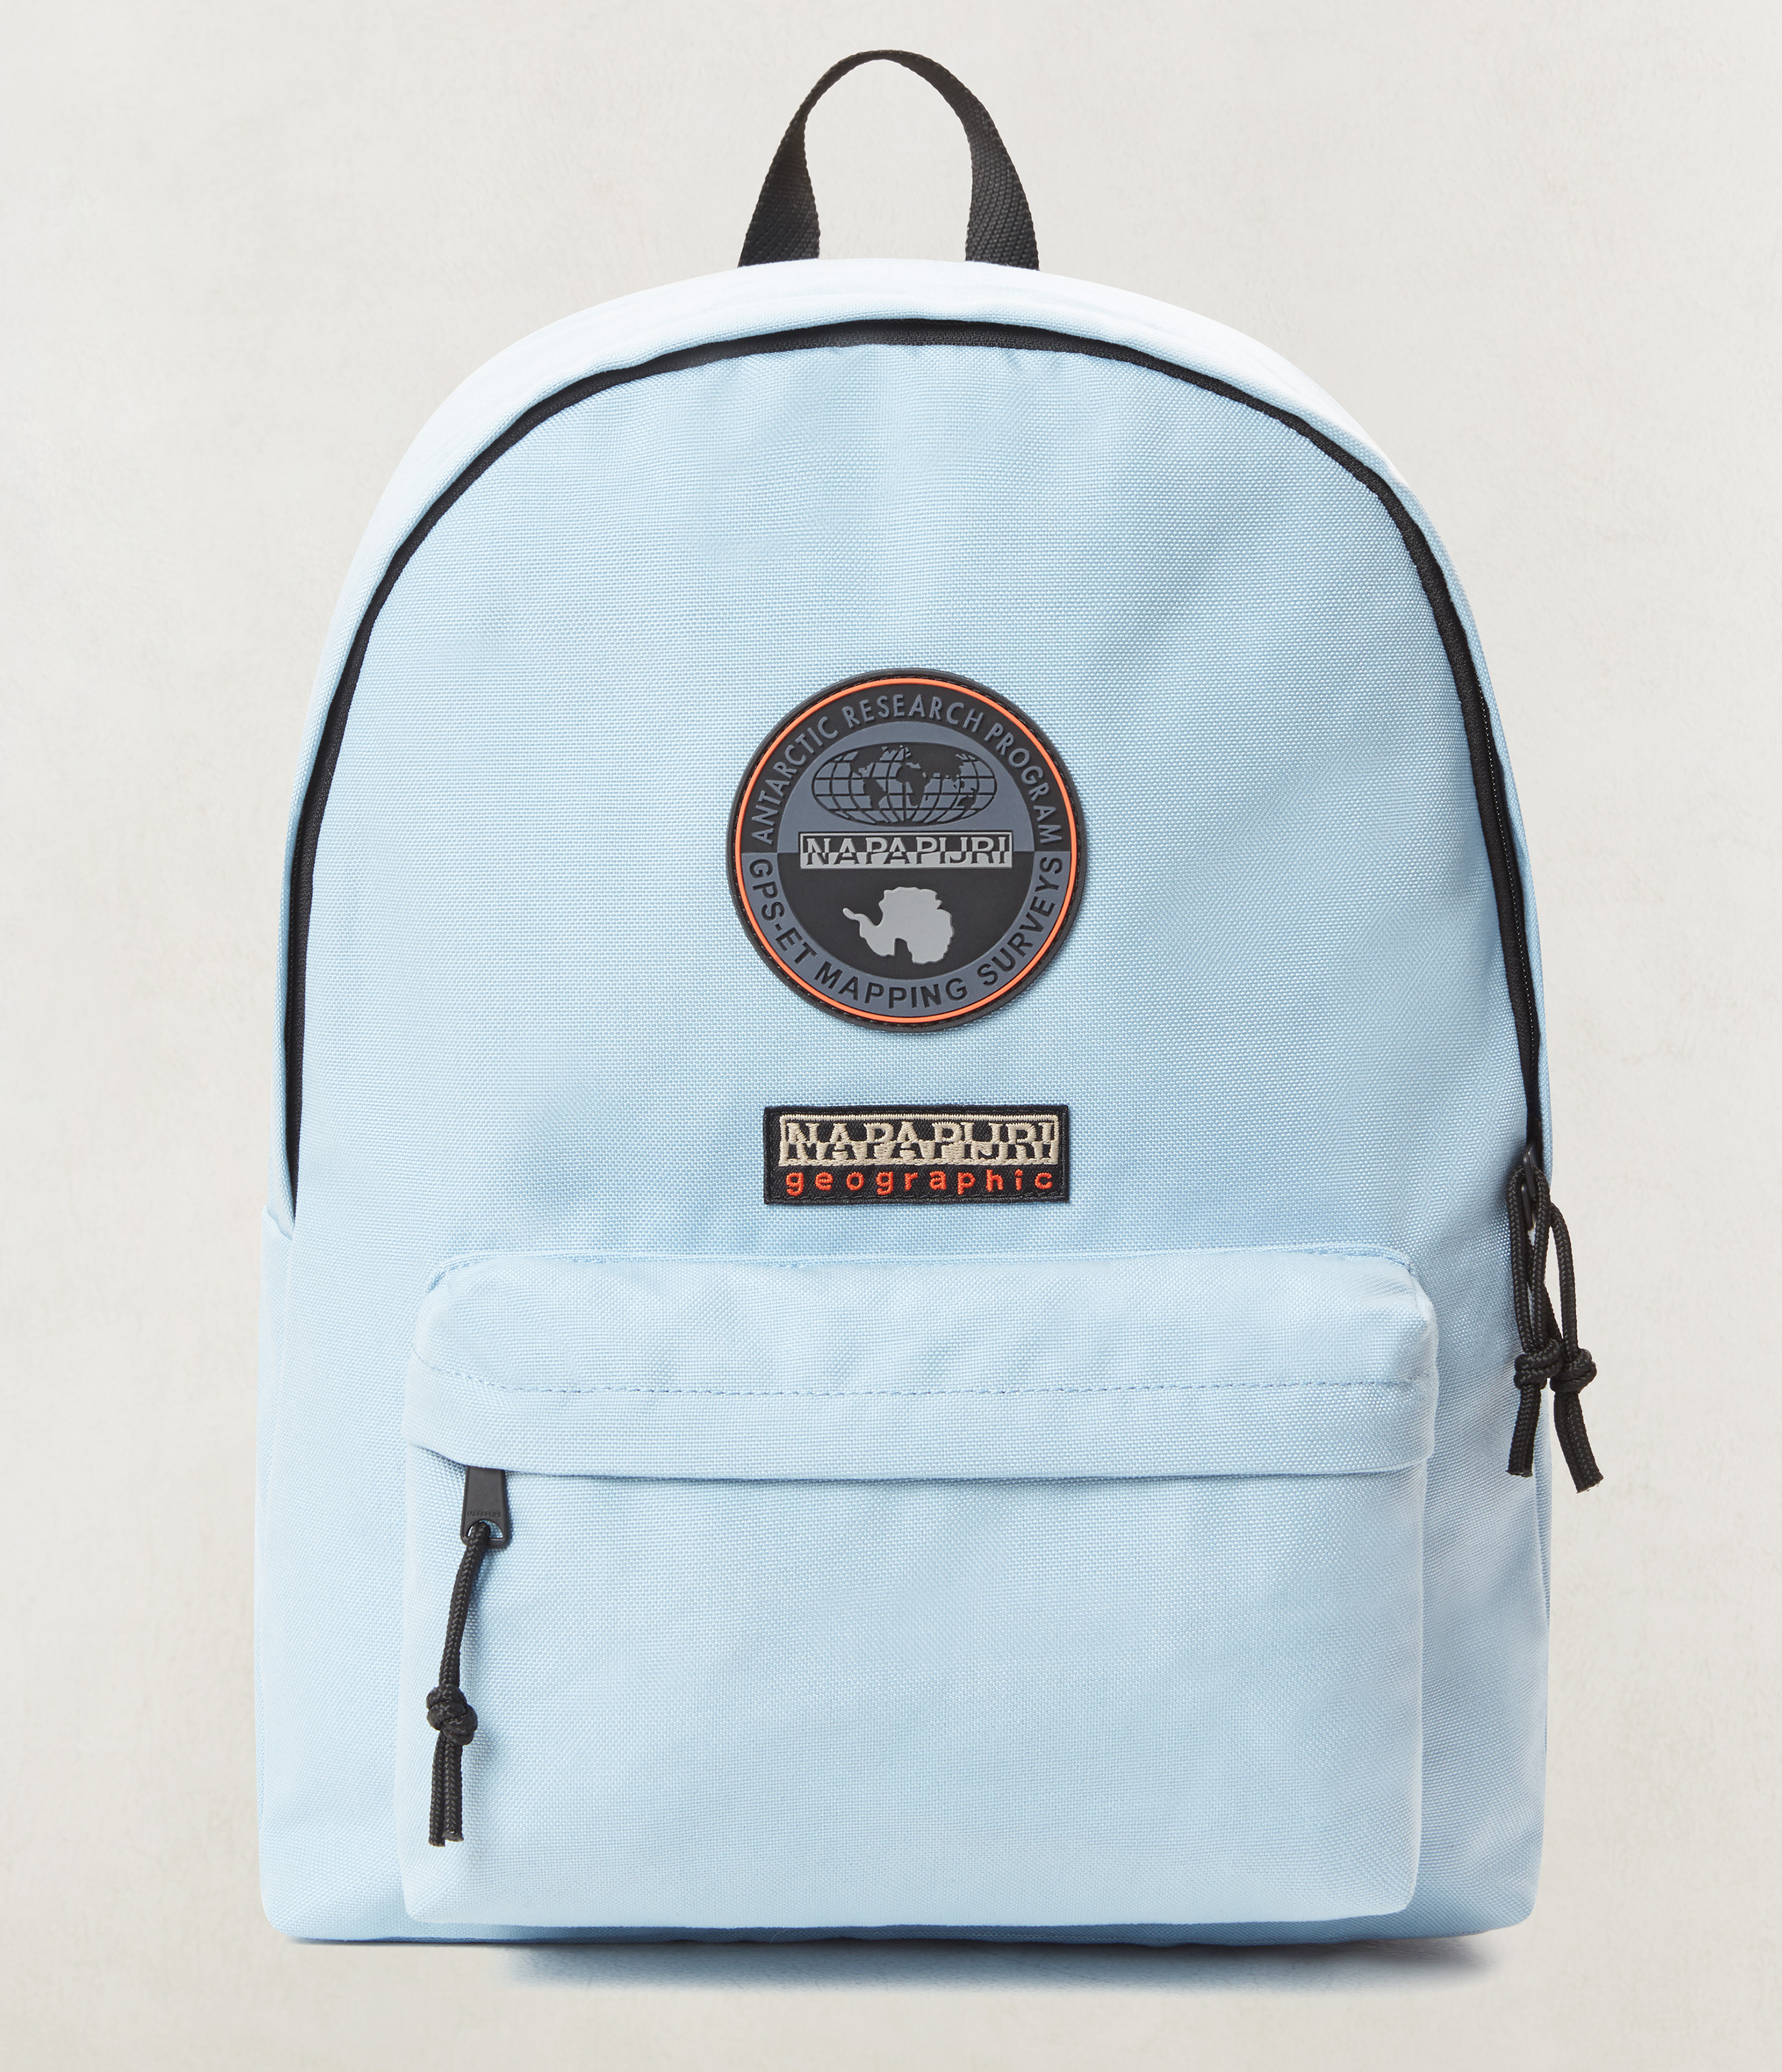 VOYAGE 1 DUSK LIGHT BLUE